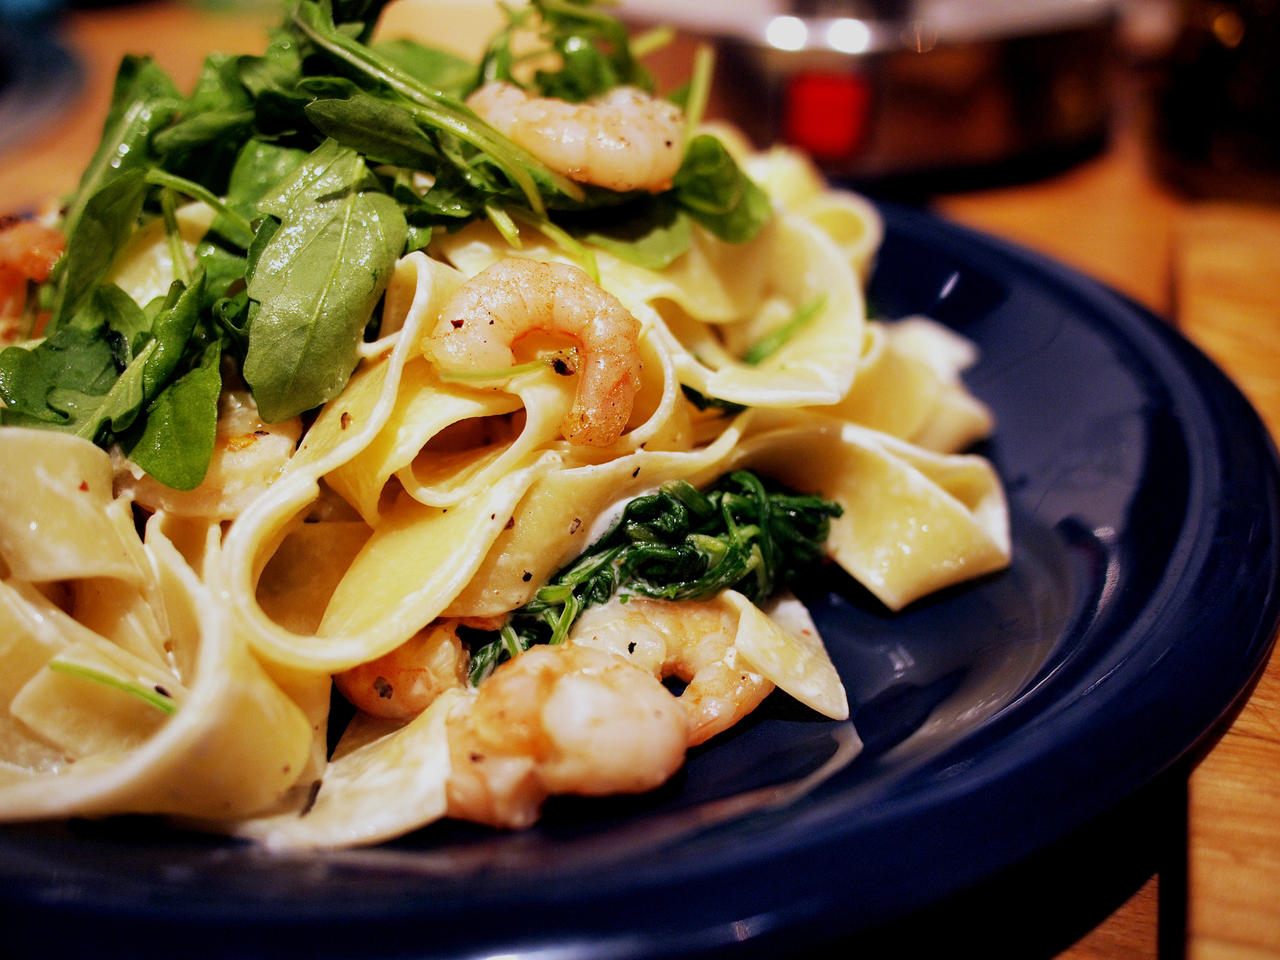 Tagliatelle, Mascarpone, Prawns, Rocket by Shocktherapist